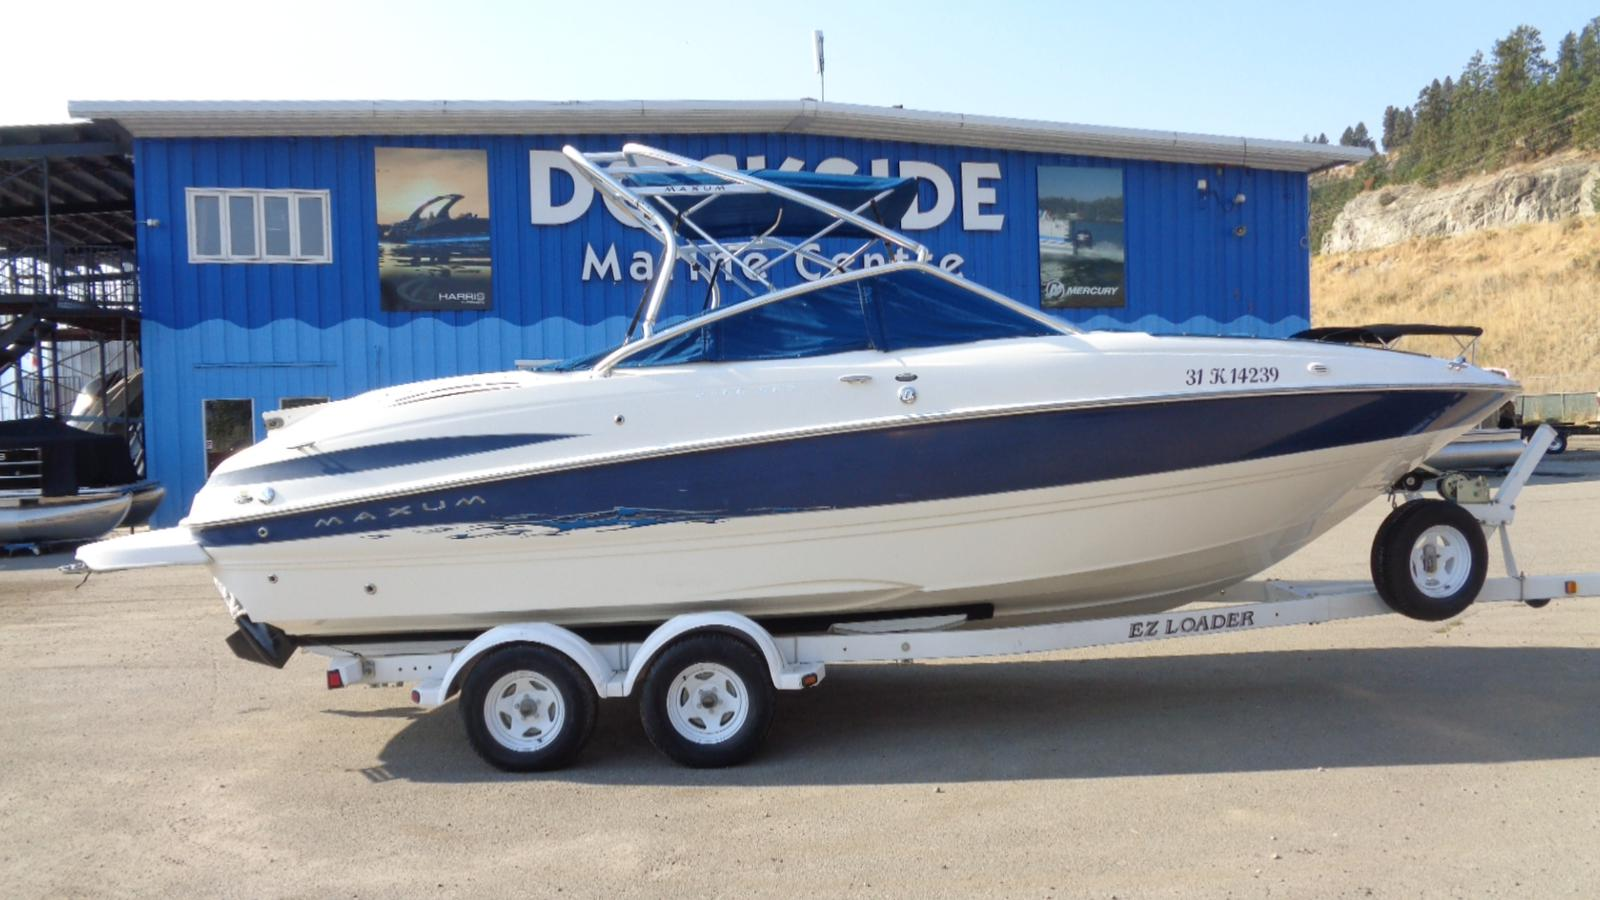 For Sale: 2005 Maxum 2400 Sr3 24ft<br/>Dockside Marine Centre, LTD.